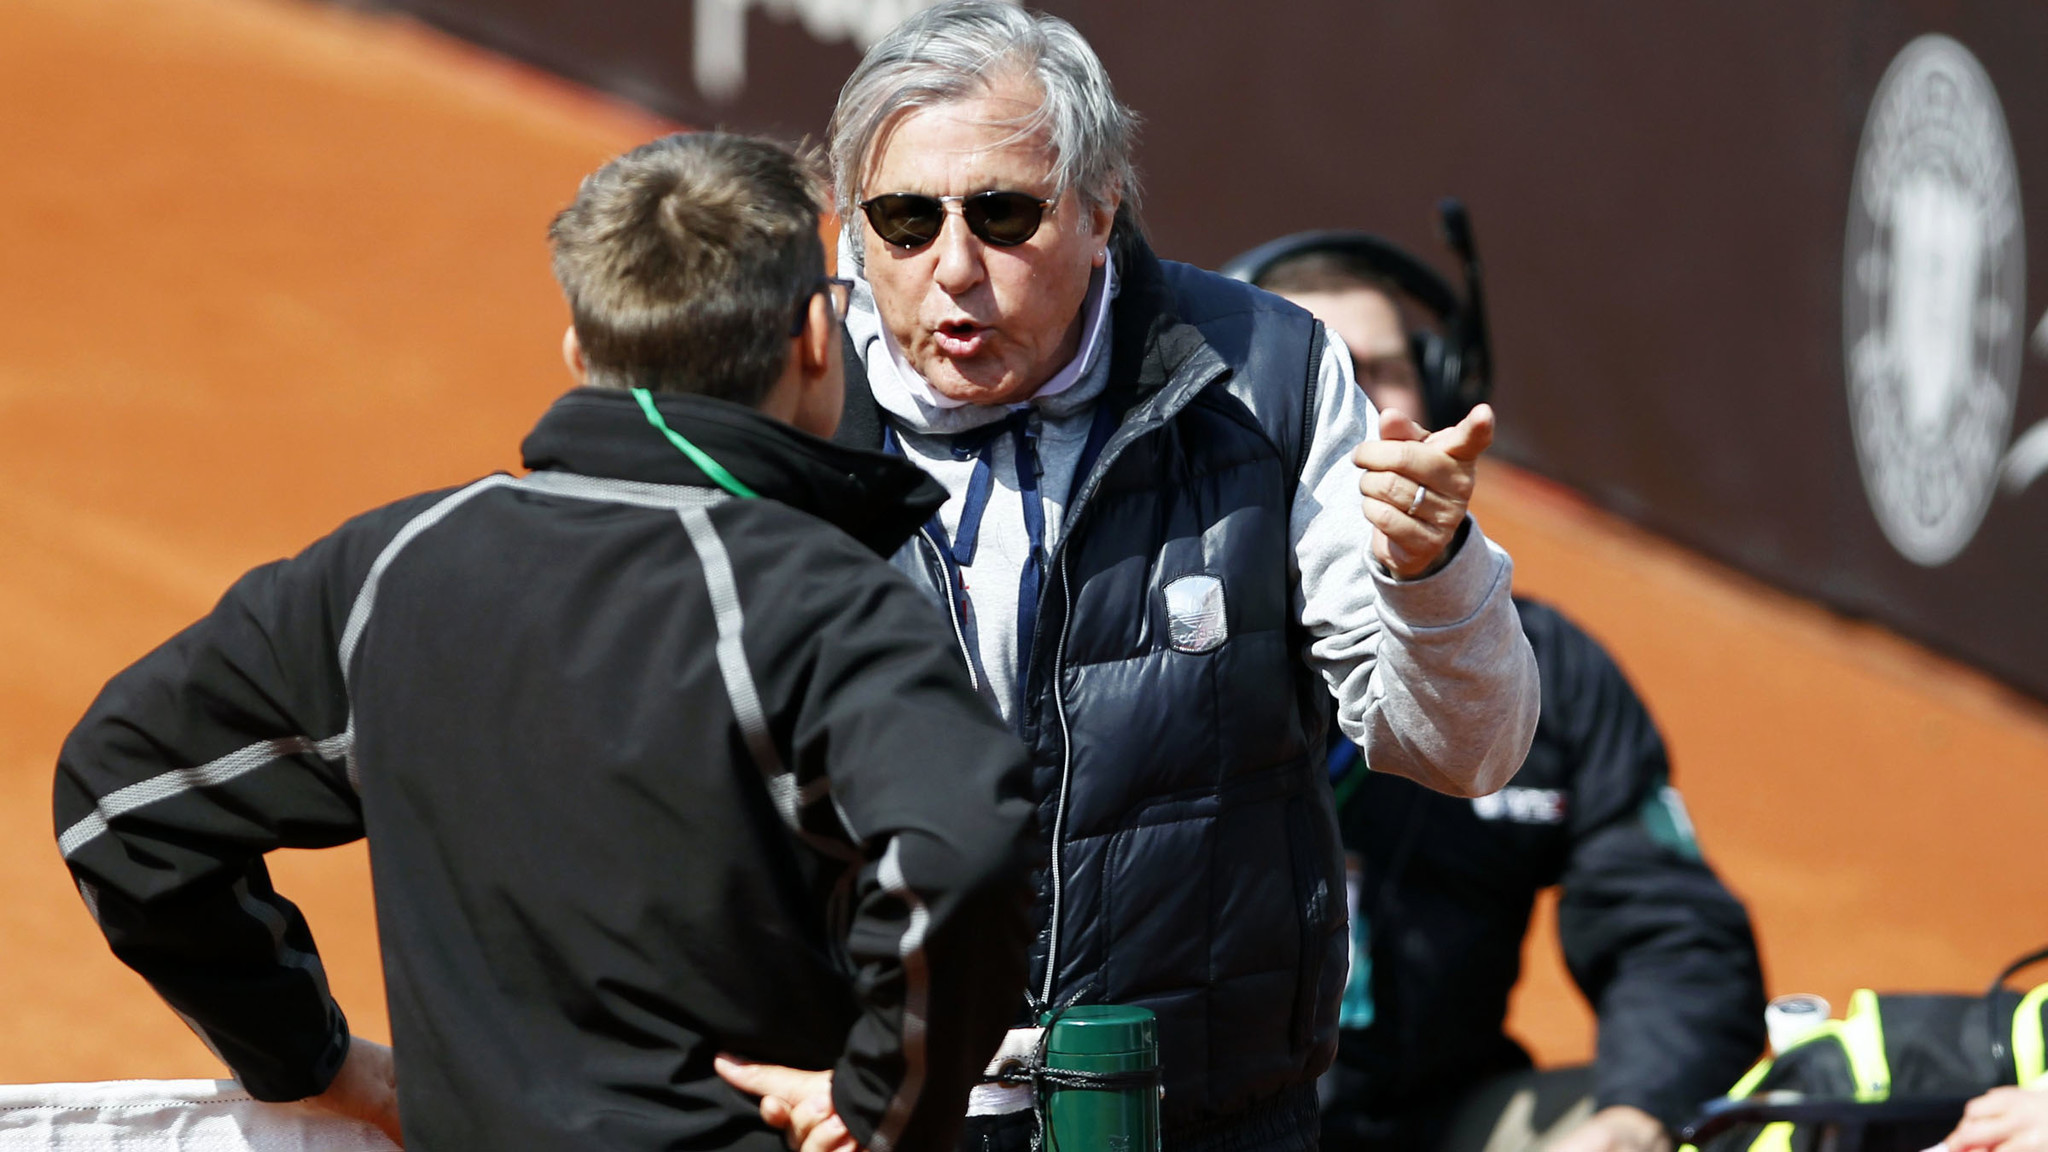 Romania captain Ilie Nastase ejected from Fed Cup match against